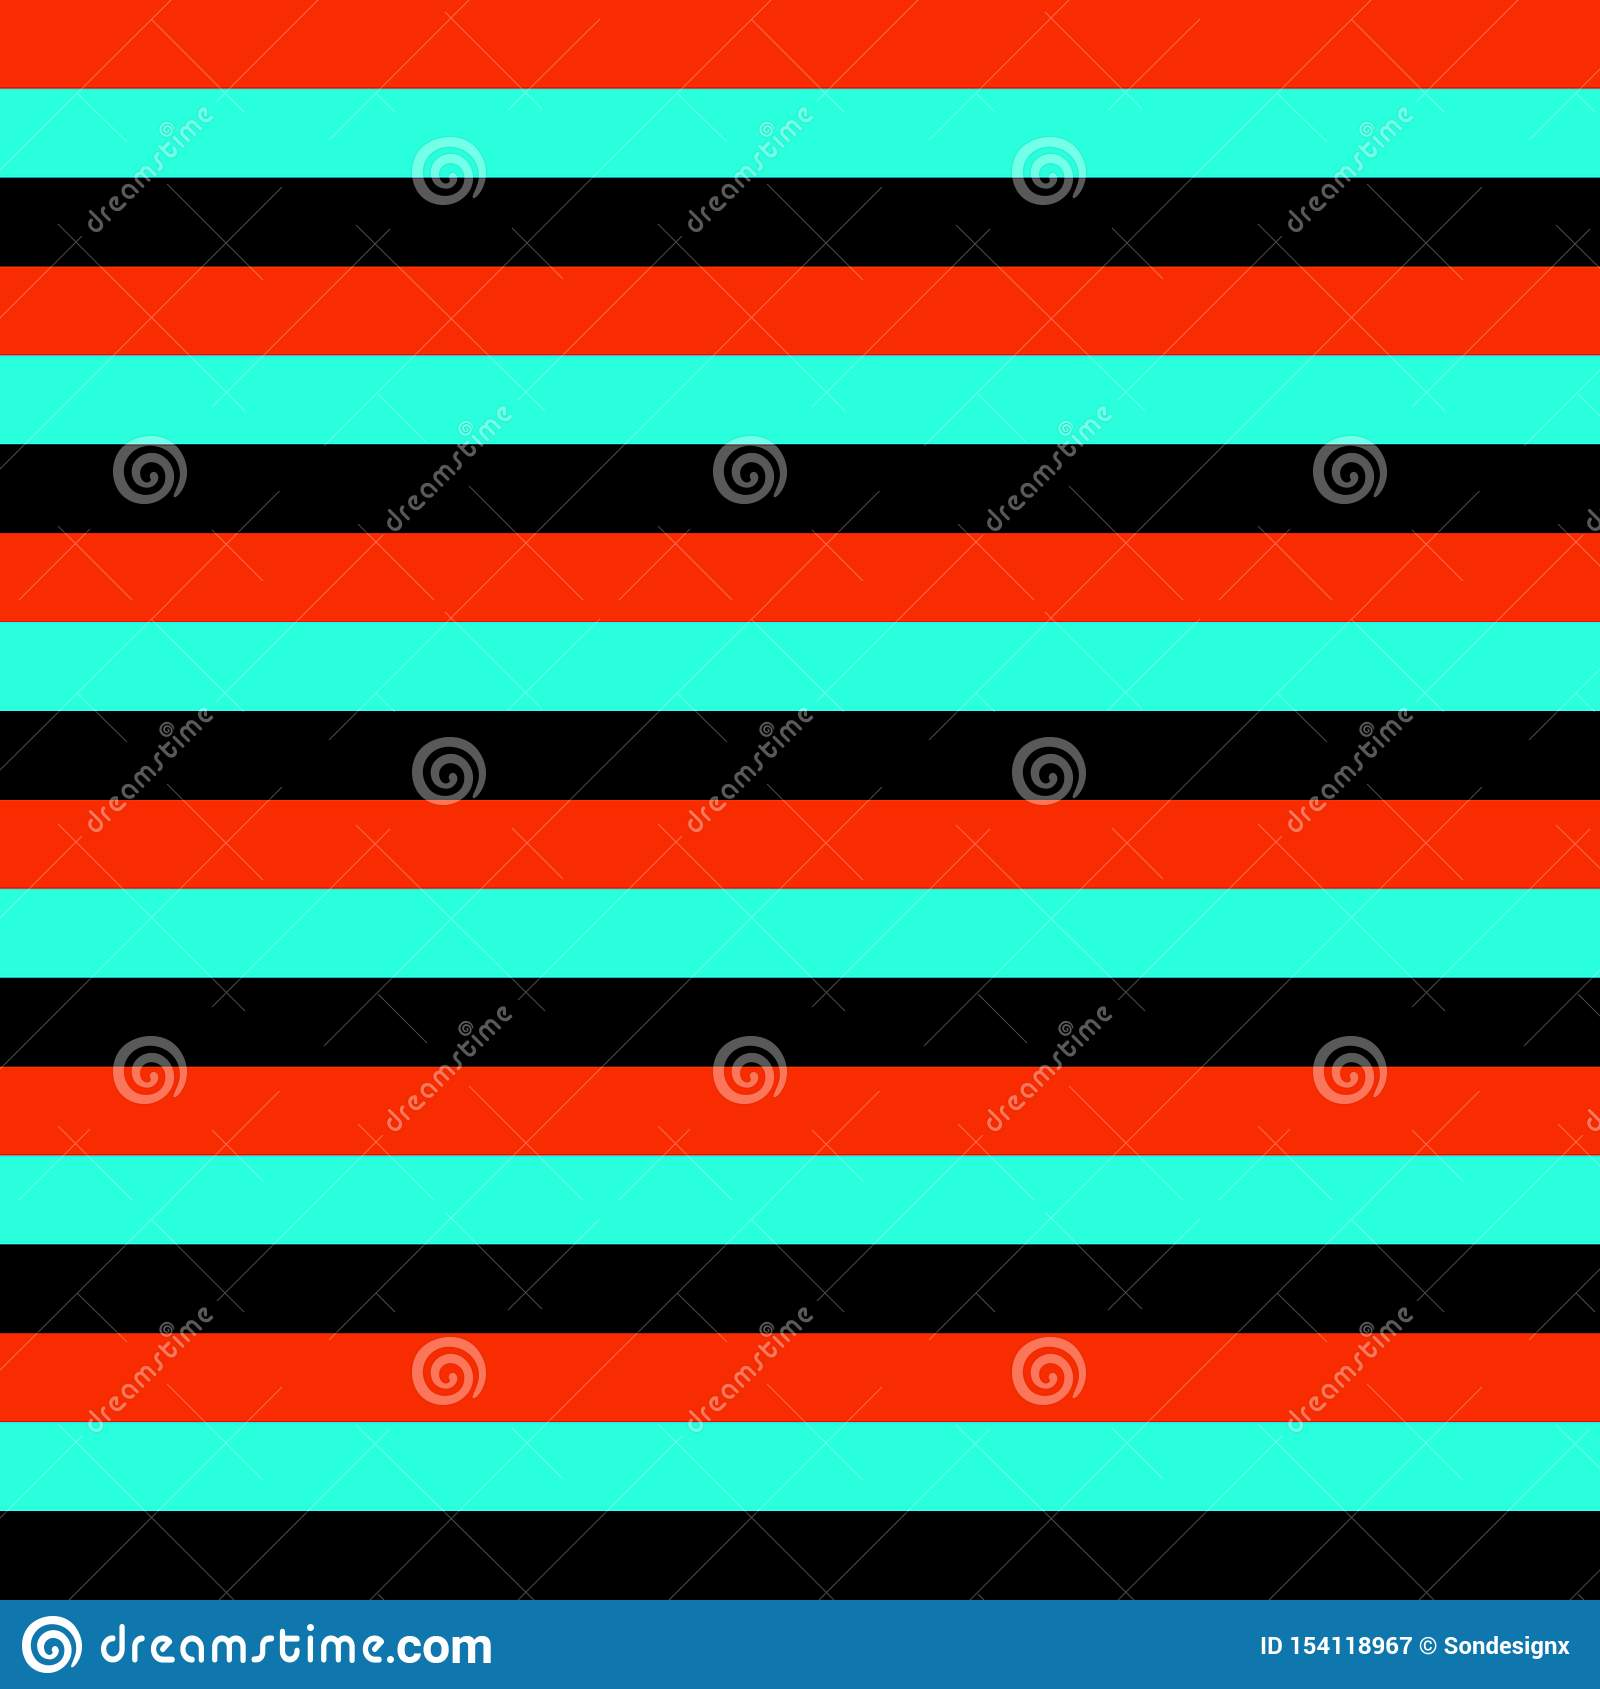 Seamless geometric stripes lines pattern vector background colorful horizontal design vintage retro abstract art black turquoise r